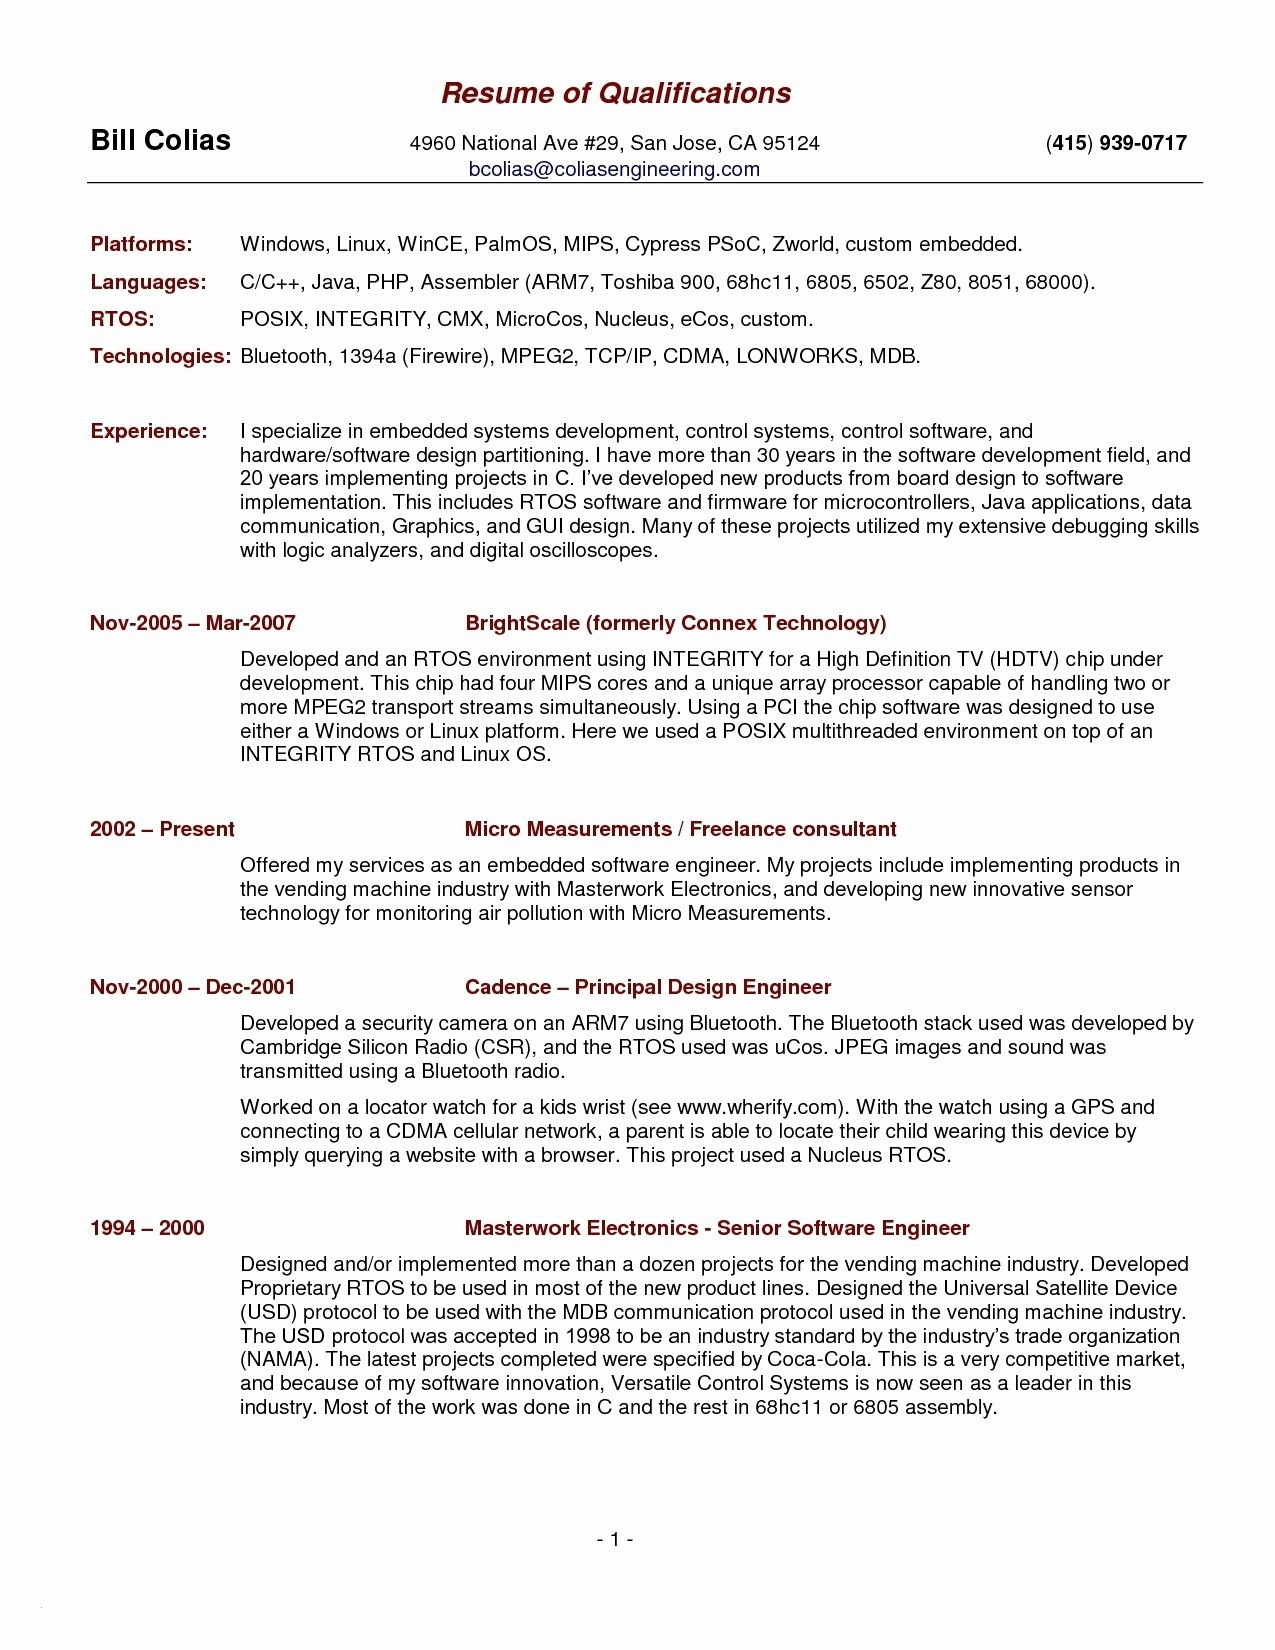 Service Industry Resume Templates - Resume Templates Pdf Free Inspirational Lovely Pr Resume Template